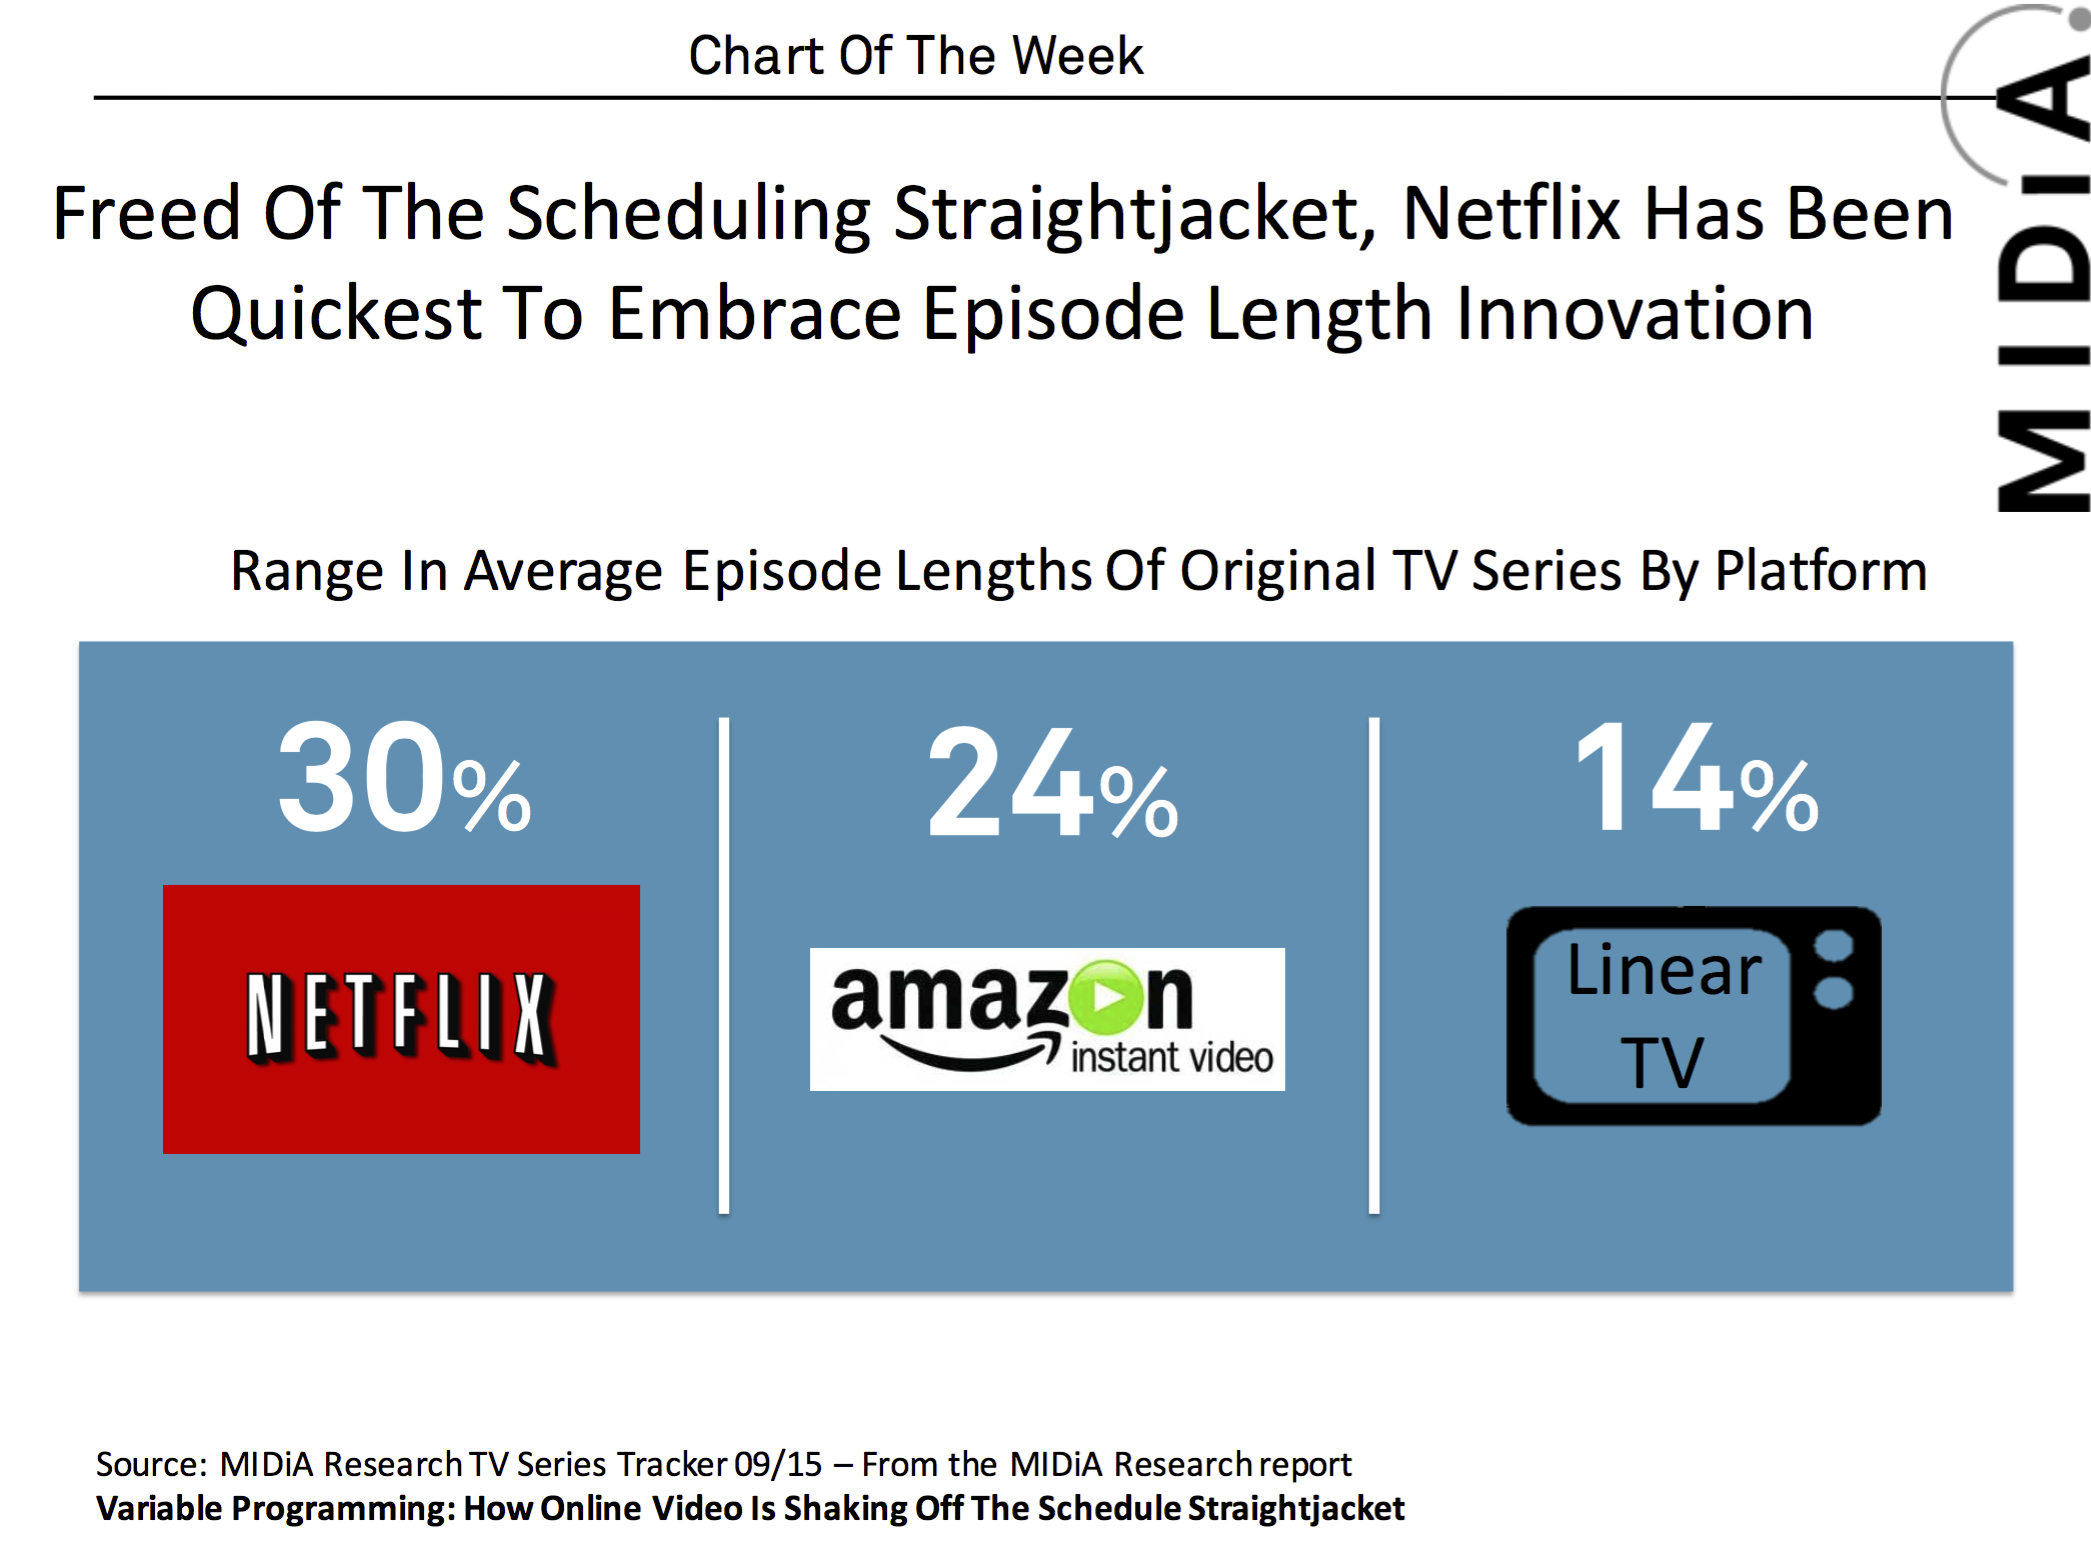 Cover image for MIDiA Chart Of The Week: Netflix Leads Format Innovation